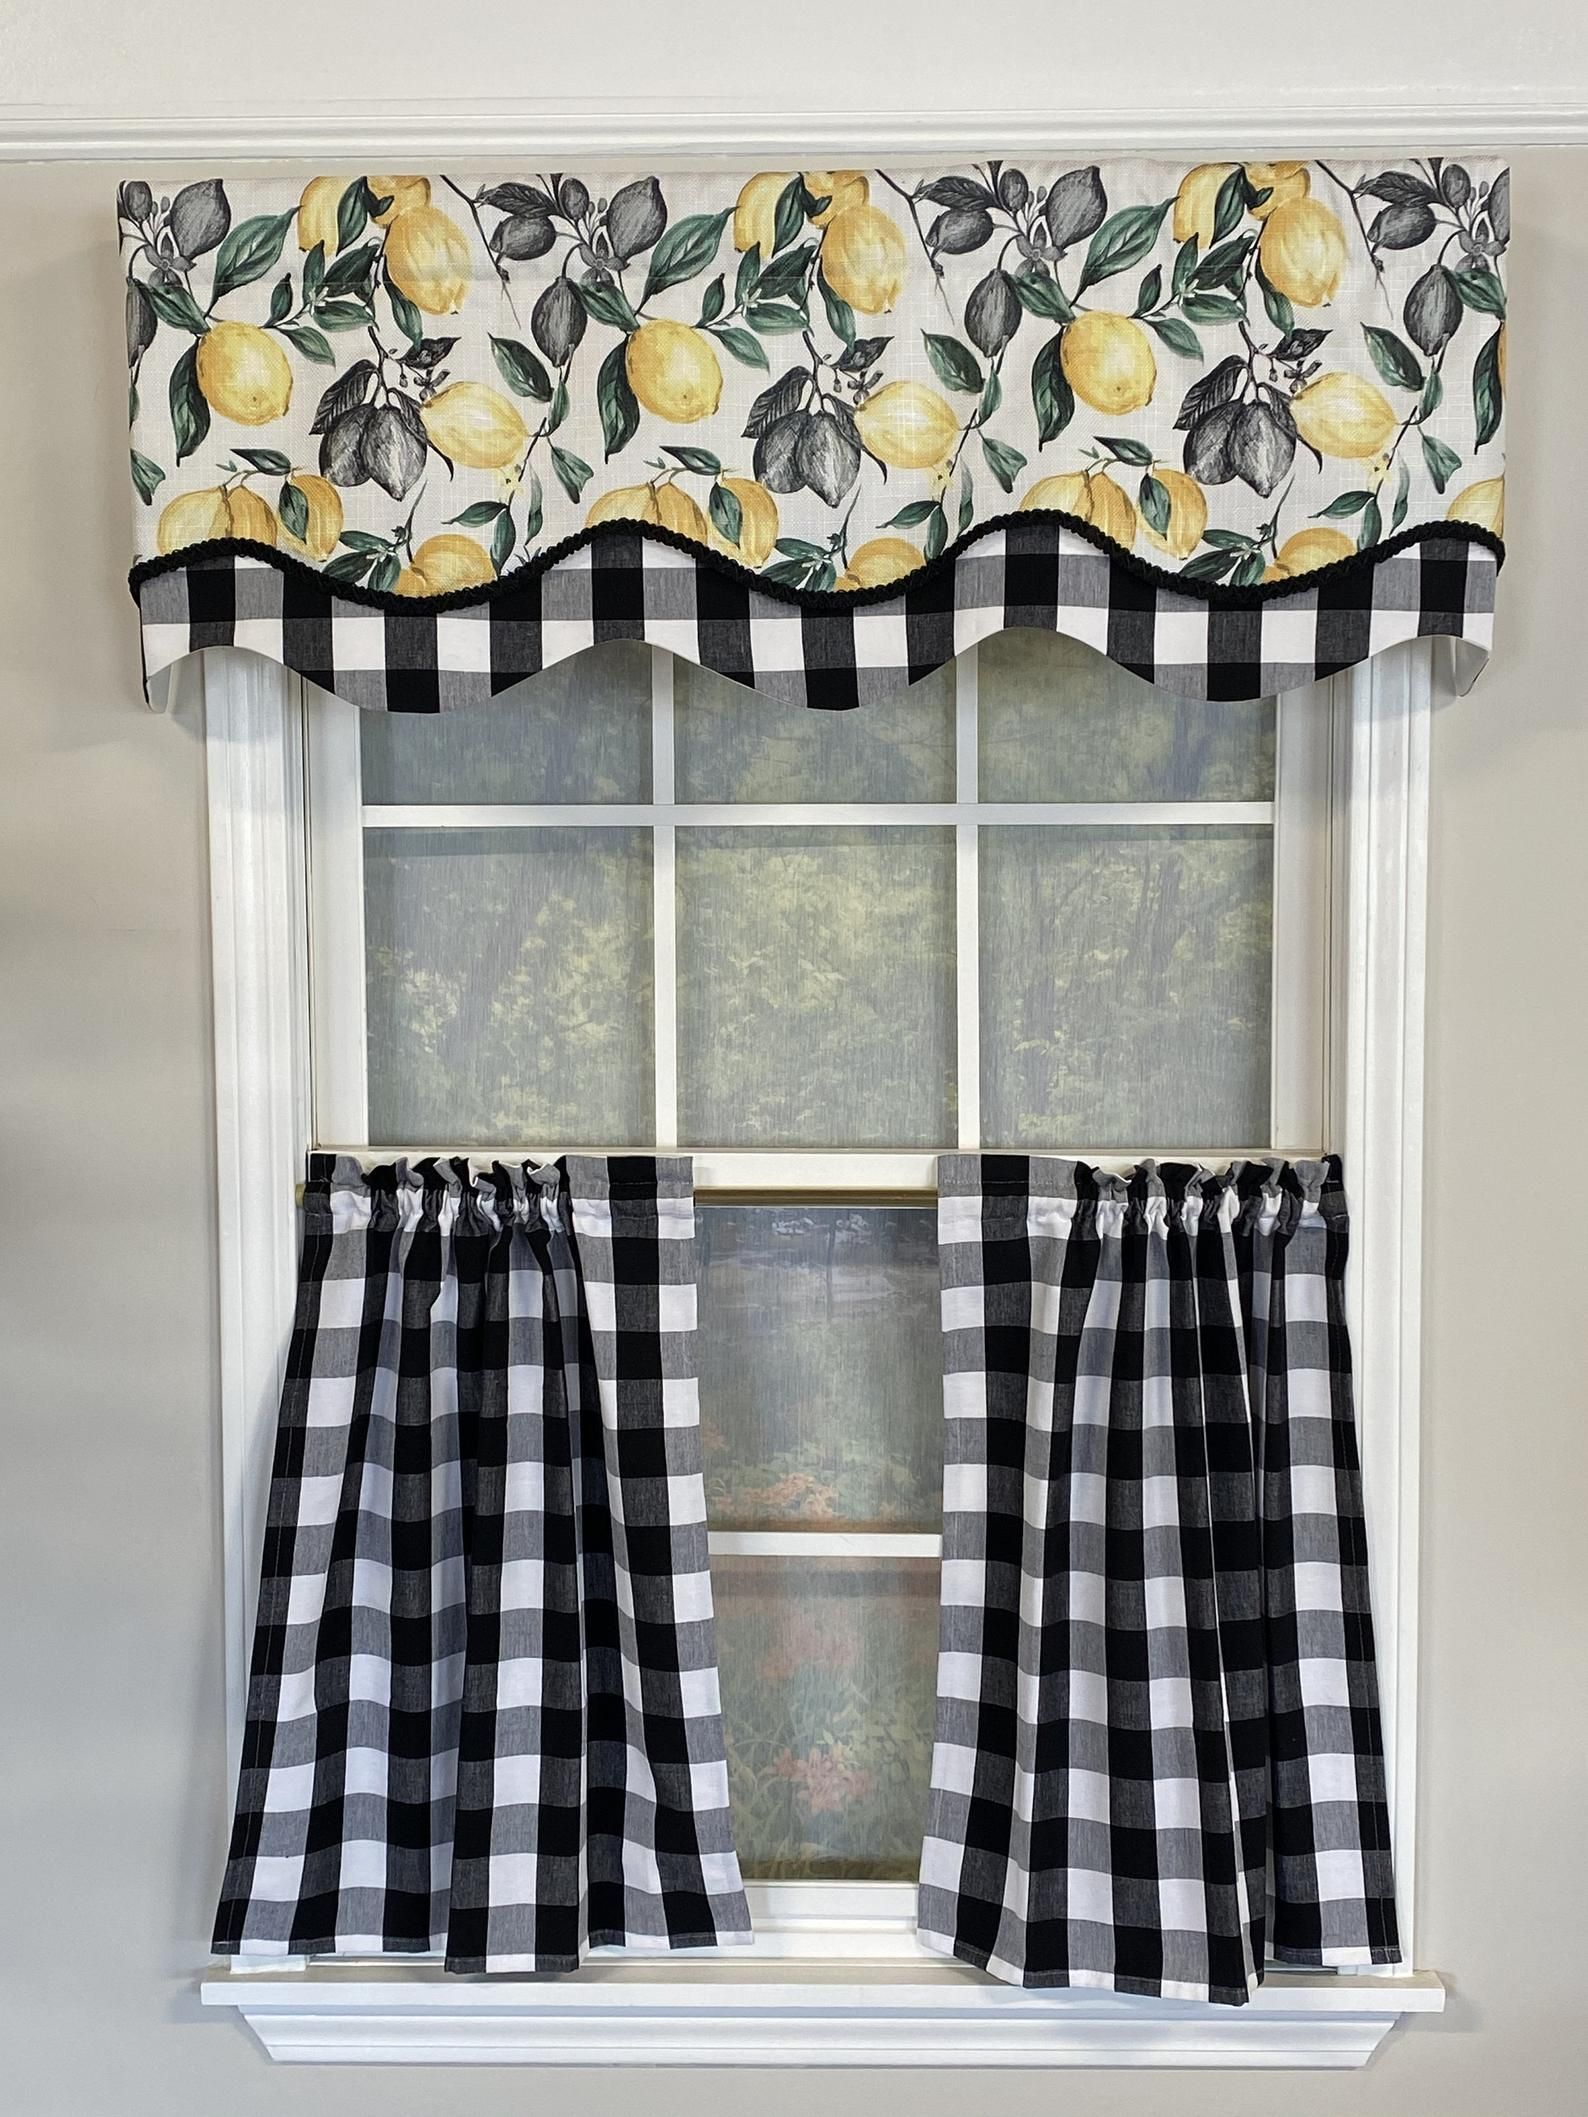 9b3032f4c485fa48a108db95ca8875fc - Better Homes And Gardens Red Check Swag Valance